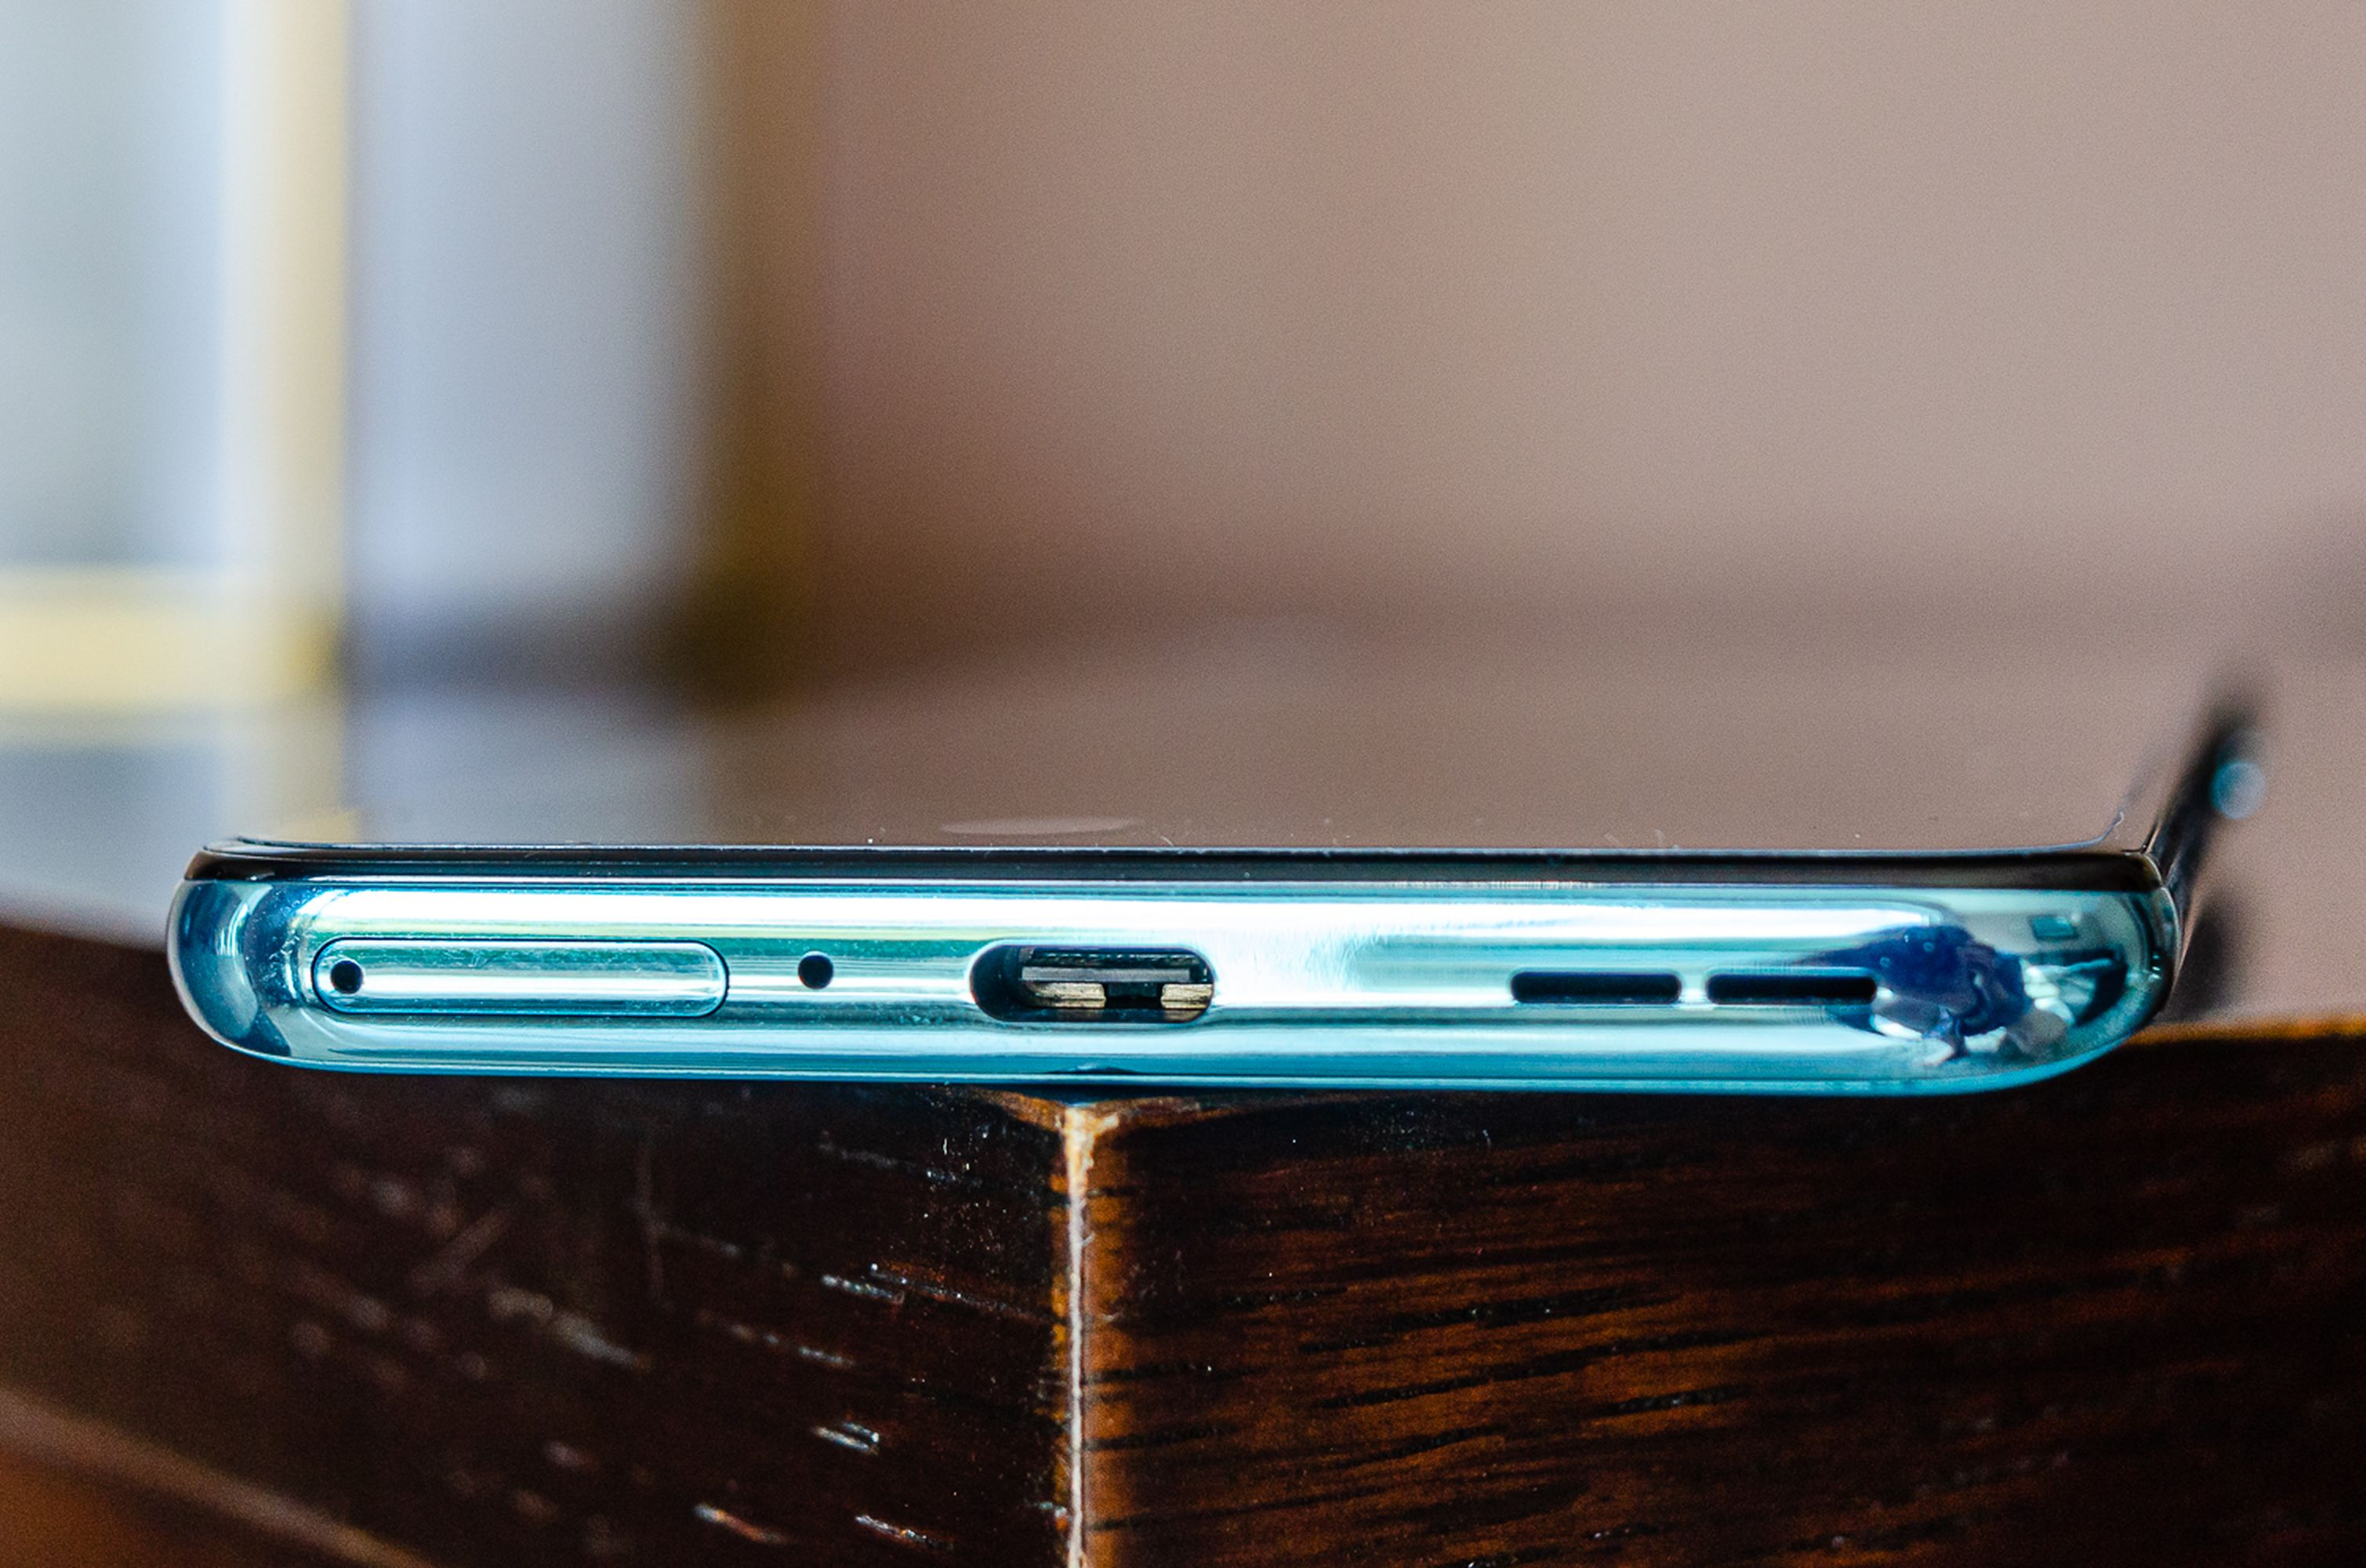 Sadly, there's no headphone jack.